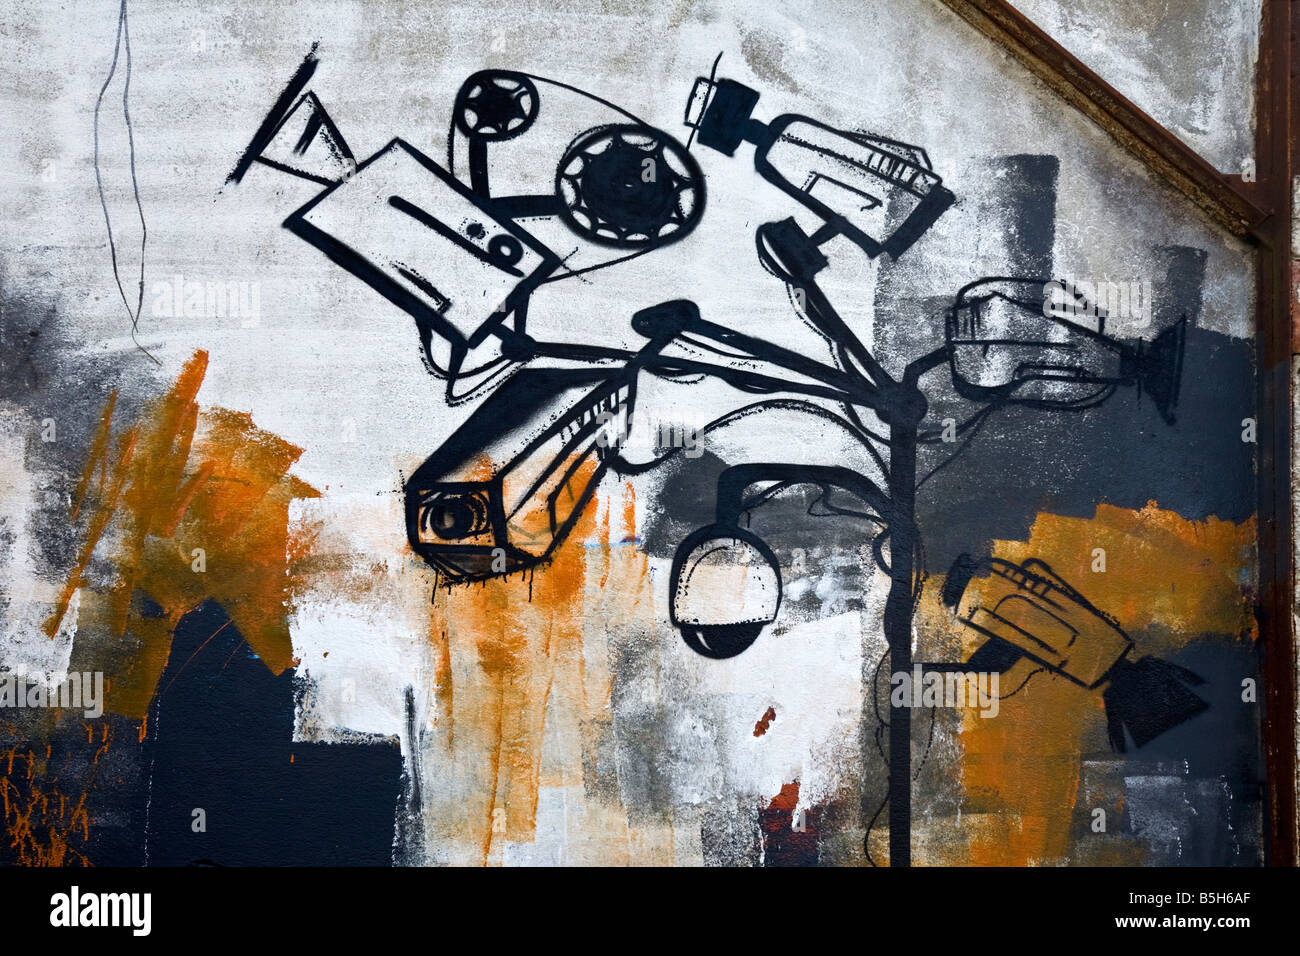 Graffiti in a brownfield site factory. Grafitti image on wall showing CCTV cameras Stock Photo